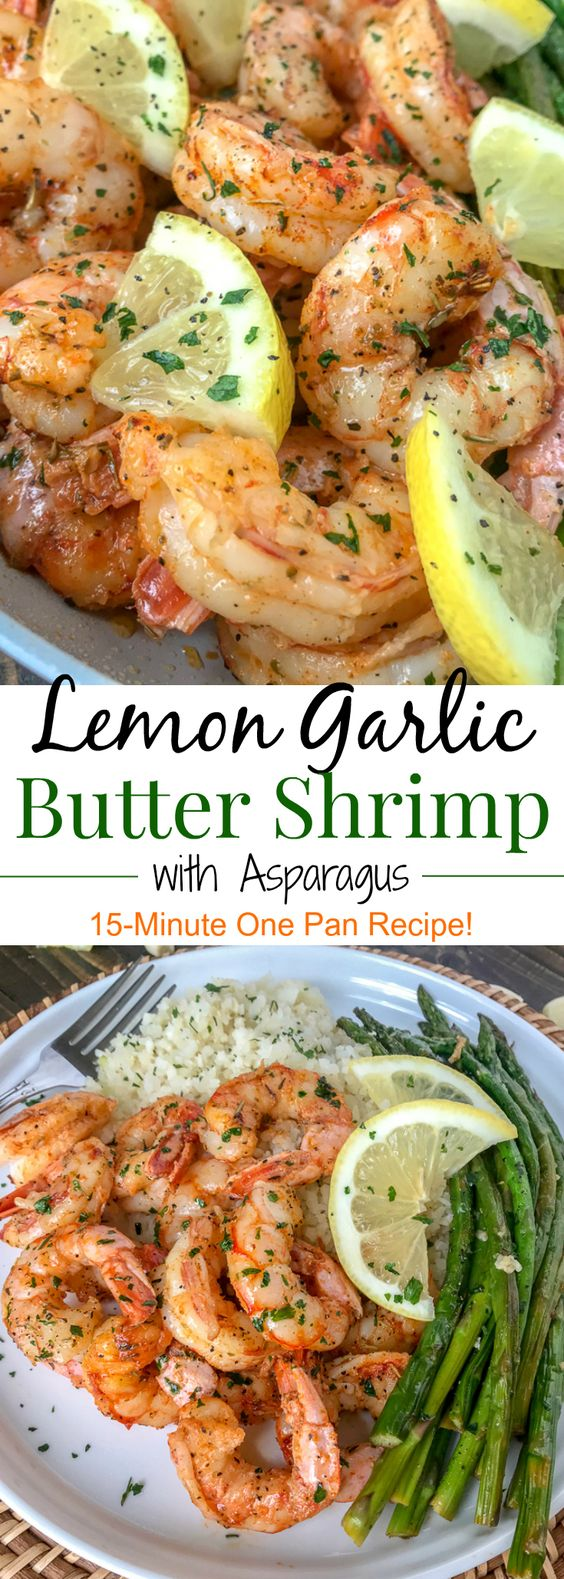 Lemon Garlic Butter Shrimp with Asparagus – this is an easy, light and healthy dinner option that is cooked in one pan and can be on your table in 15 minutes. Buttery shrimp and asparagus flavored with lemon juice and garlic.